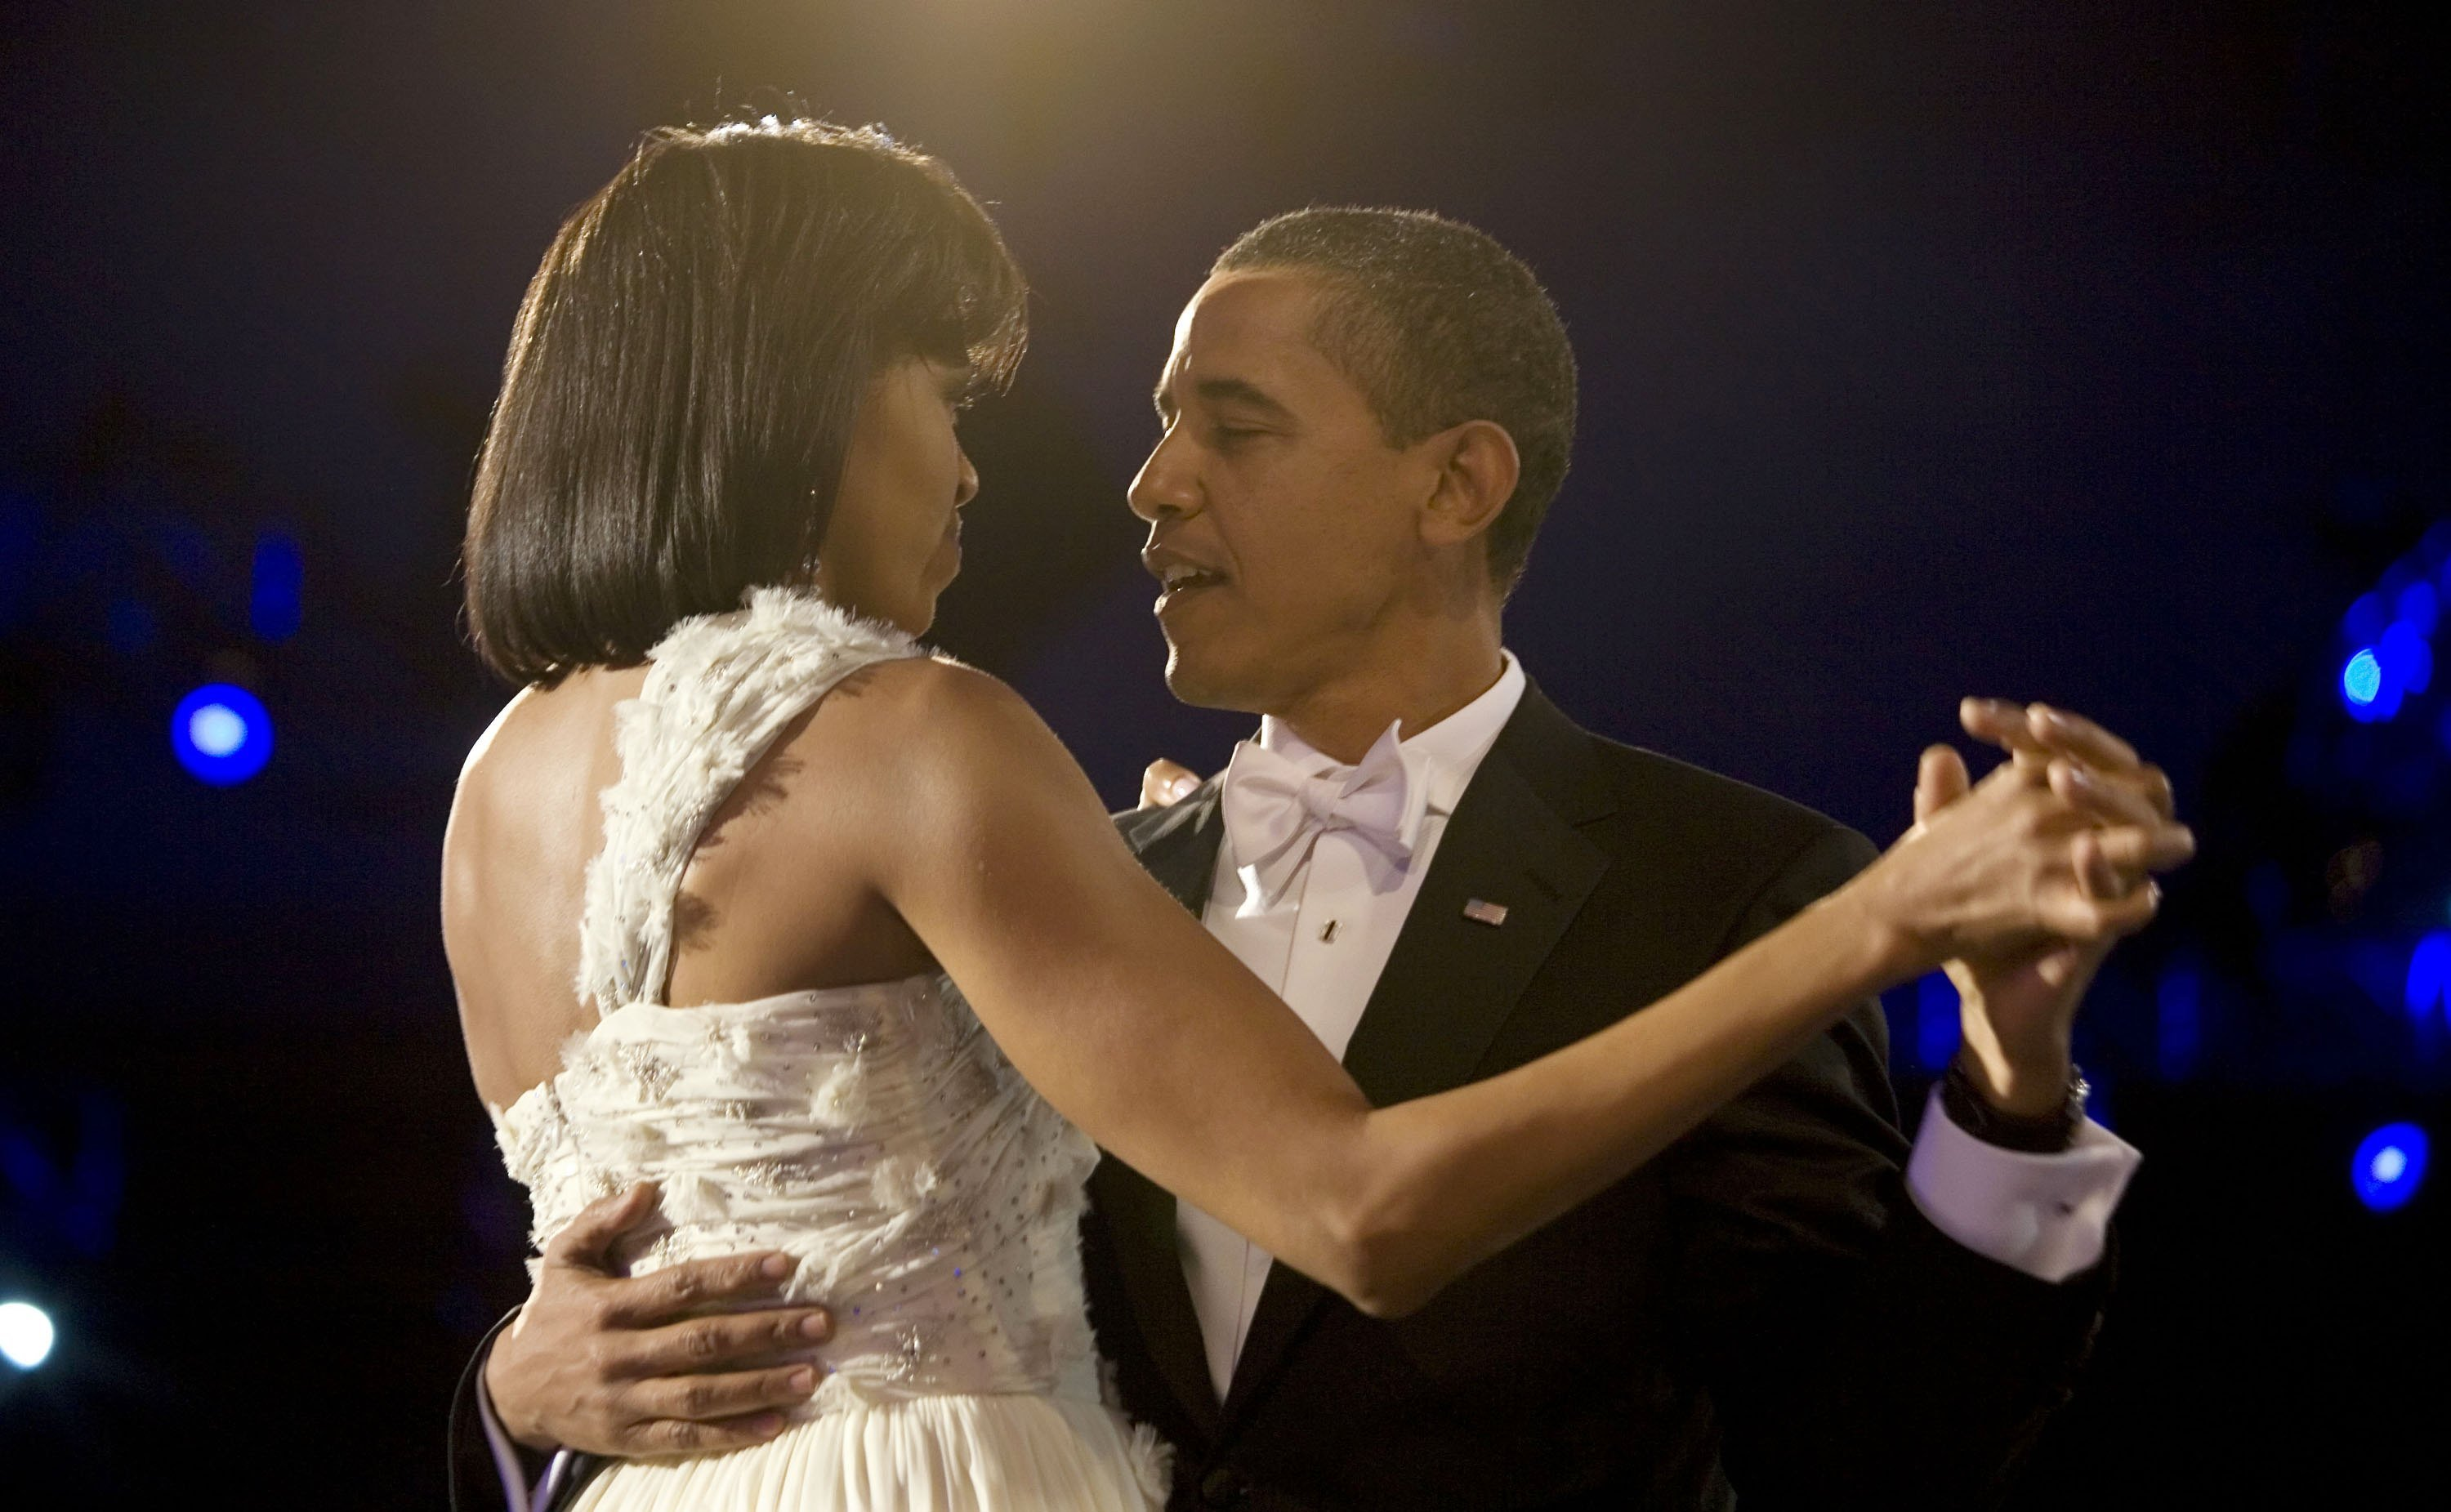 Michelle Obama & Barack Obama dancing at an inaugural gala on Jan. 20, 2009 in Washington, DC   Photo: Getty Images